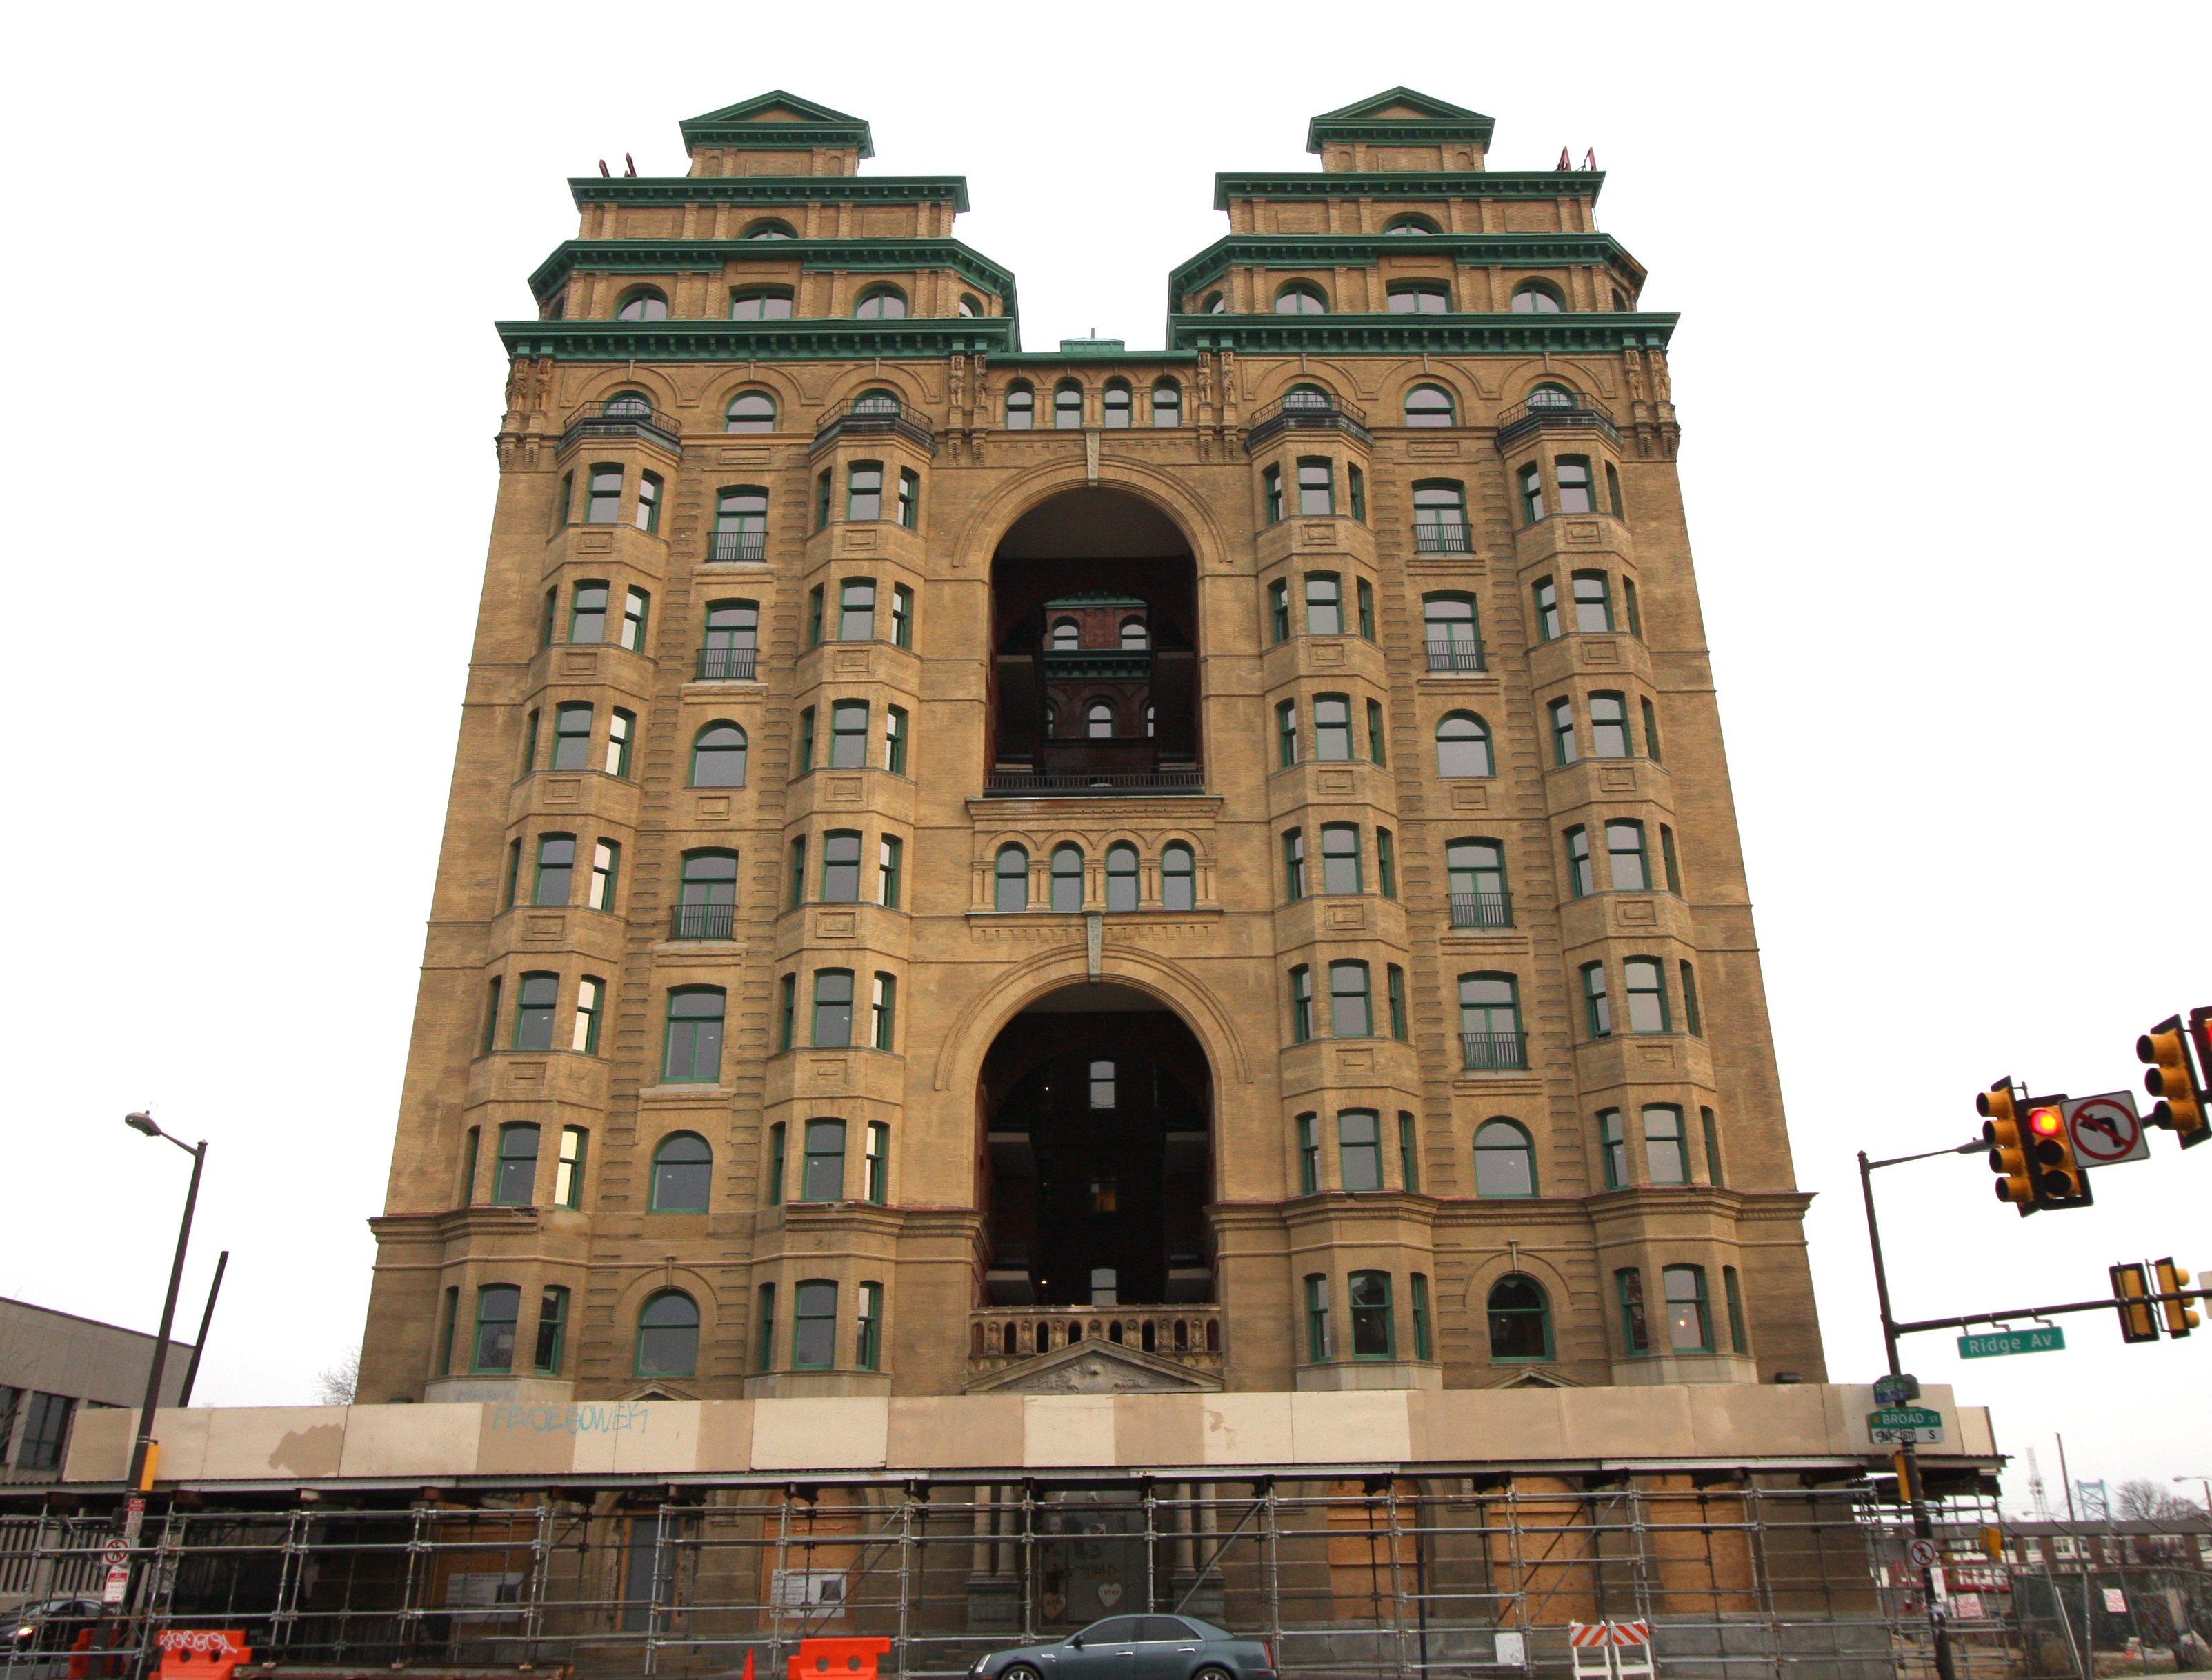 The front view of the Divine Lorraine, a historic Gilded Age building by Willis Hale.